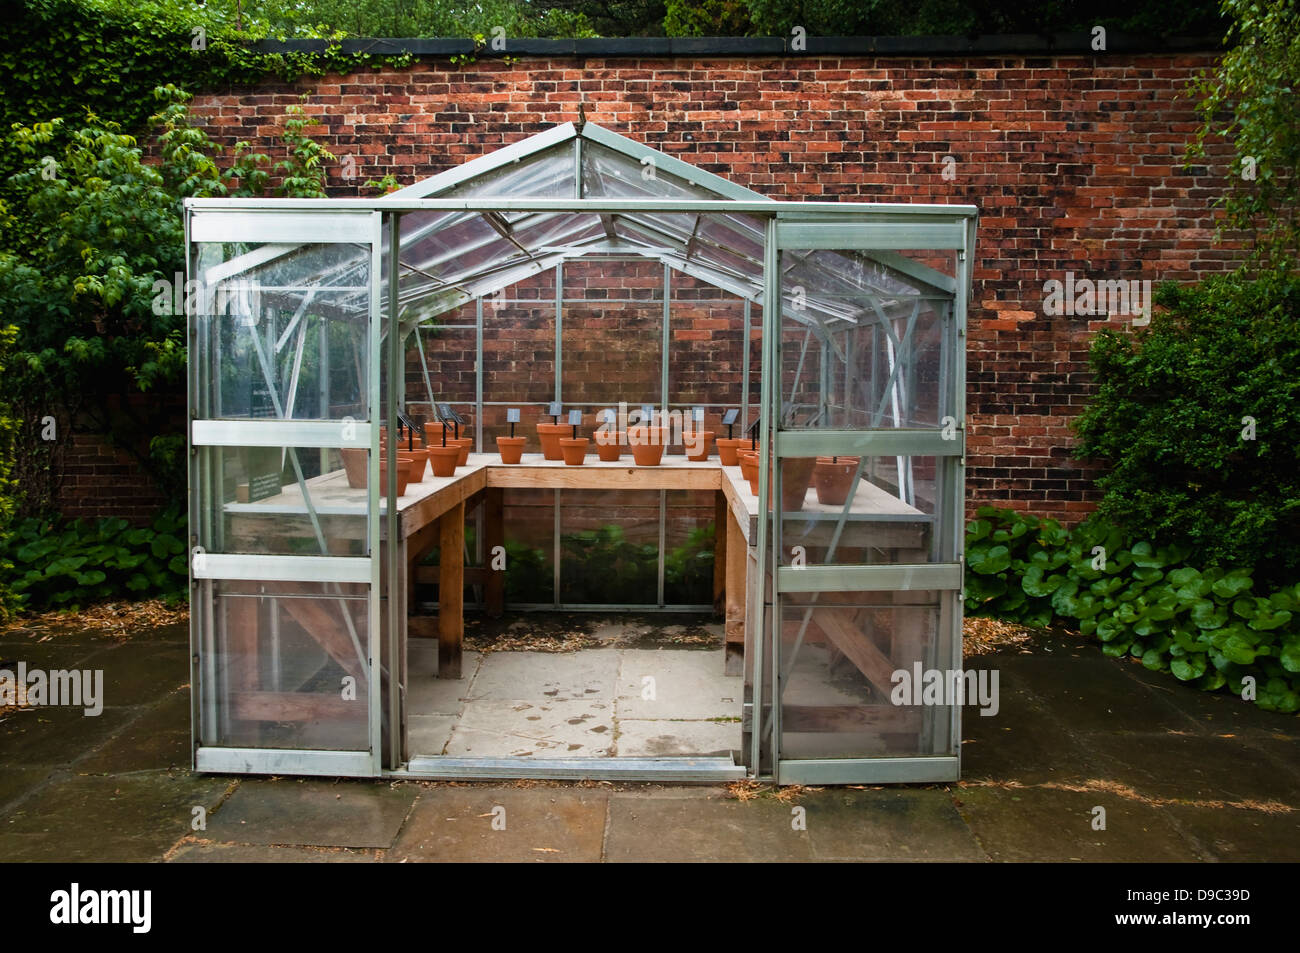 Poetry Art Installation by Alec Finlay ( Propagator ) within an aluminum greenhouse at the Yorkshire Sculpture Park. - Stock Image